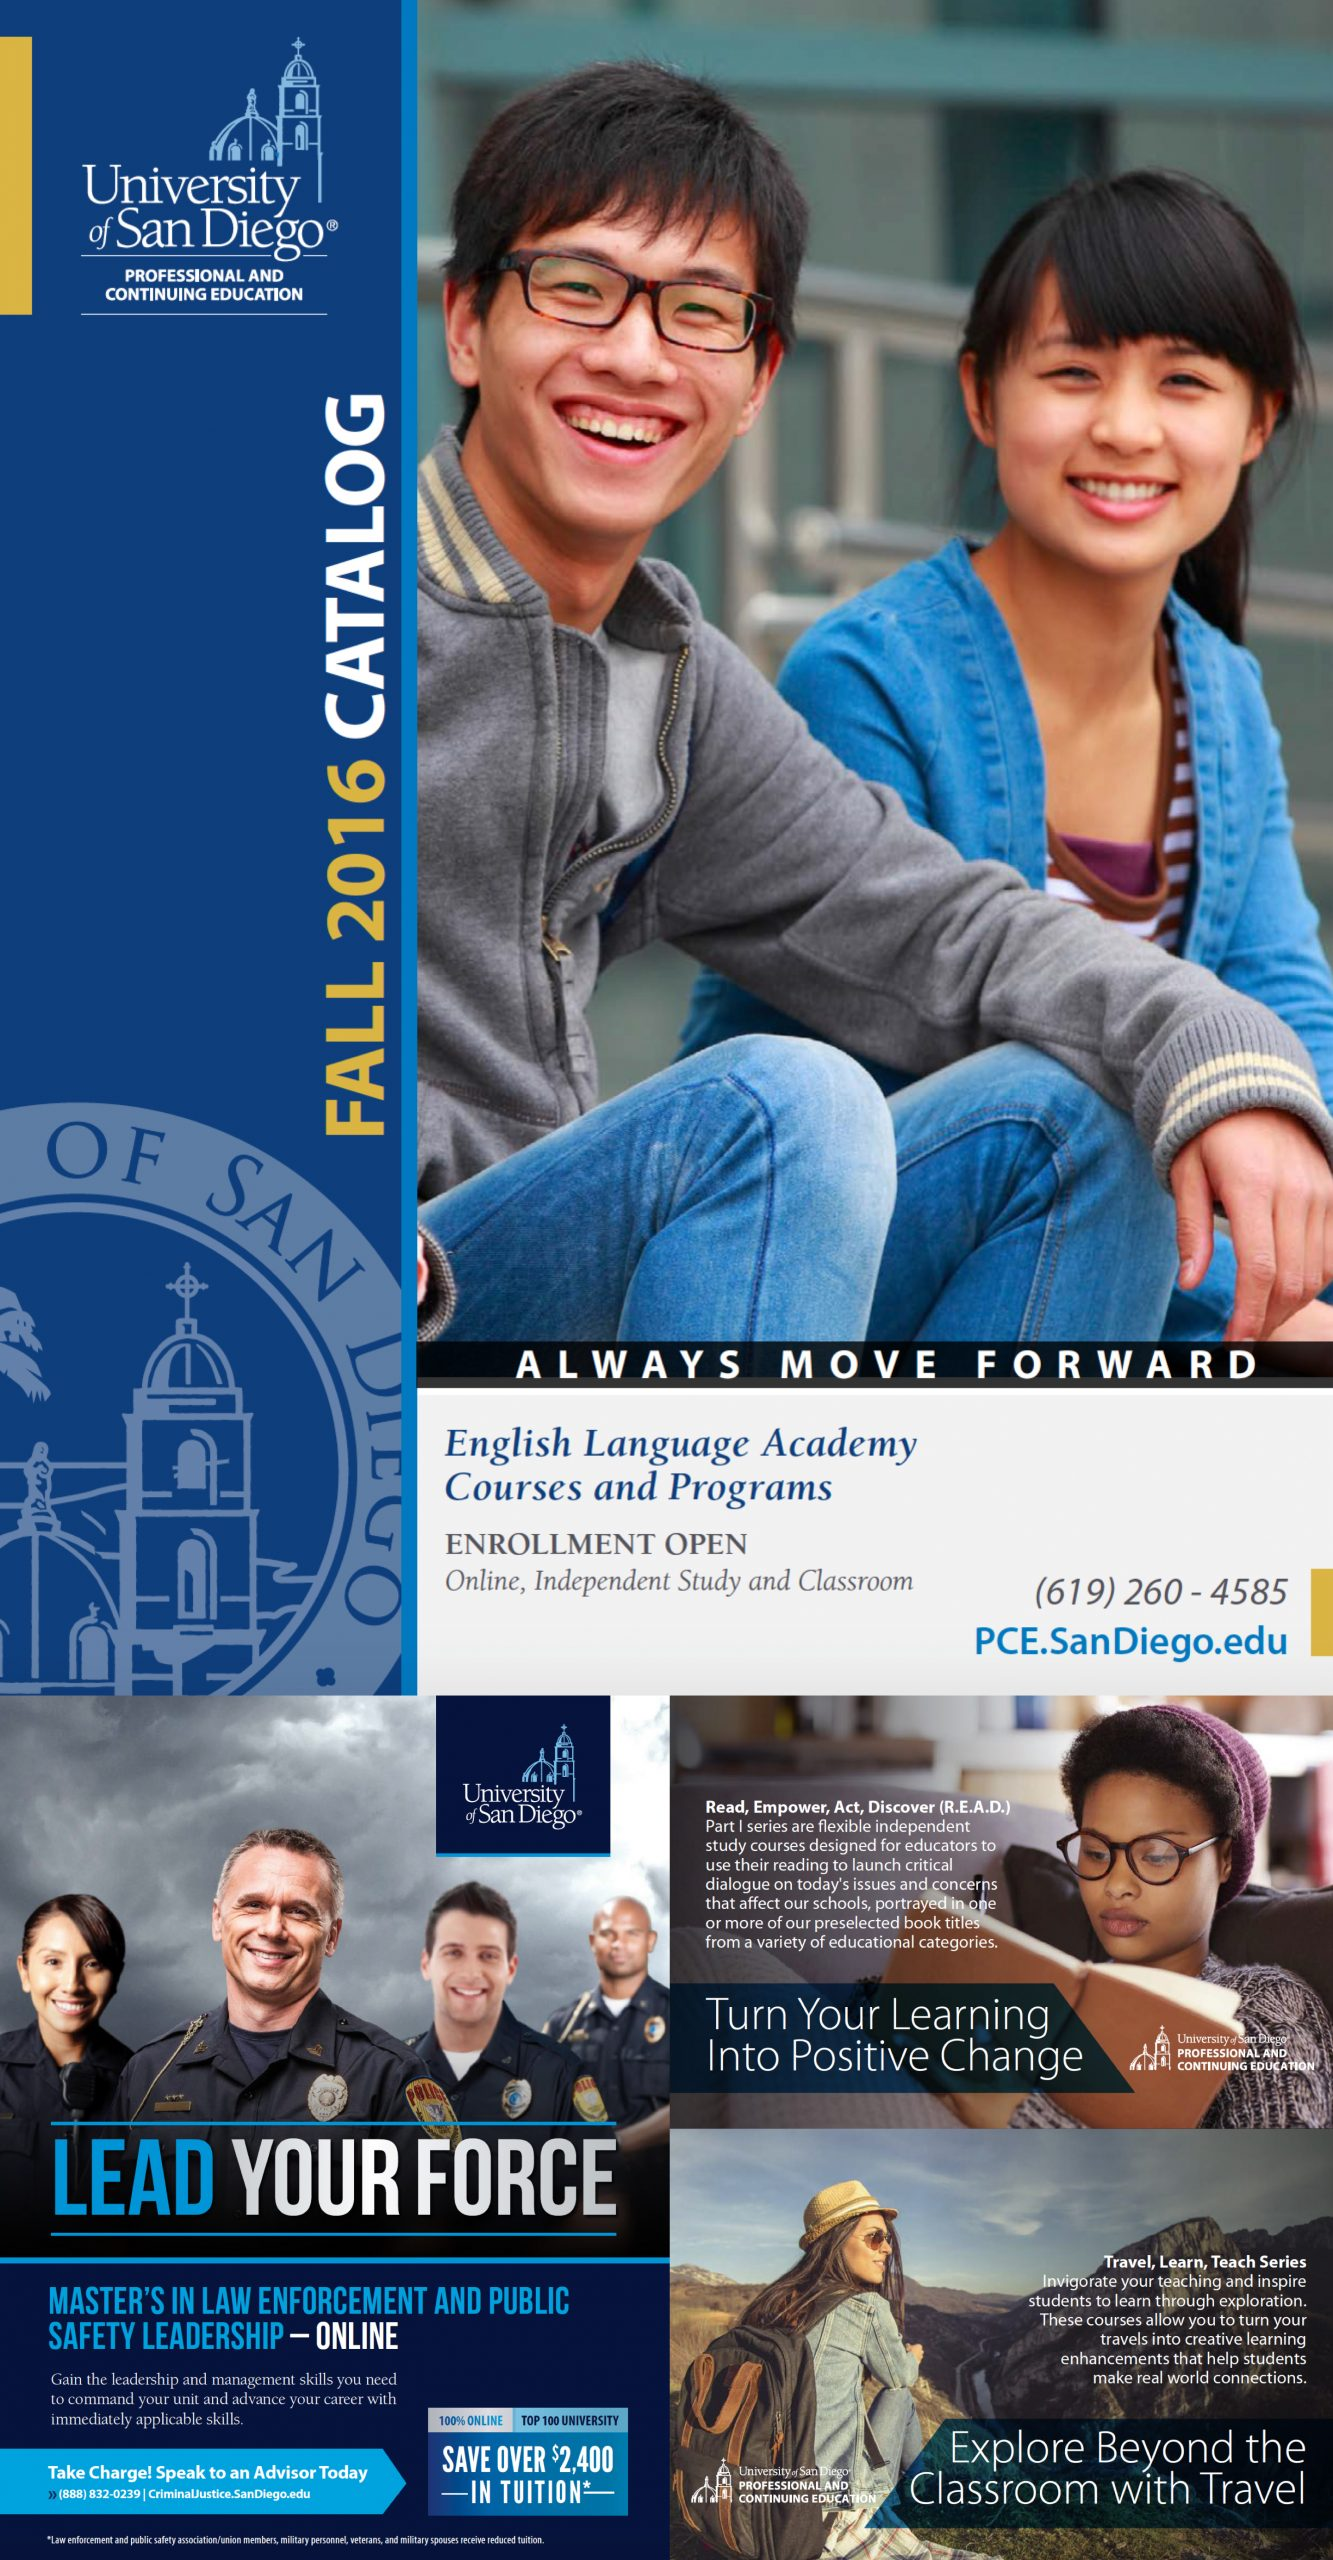 University of San Diego Academic Brochure 2016